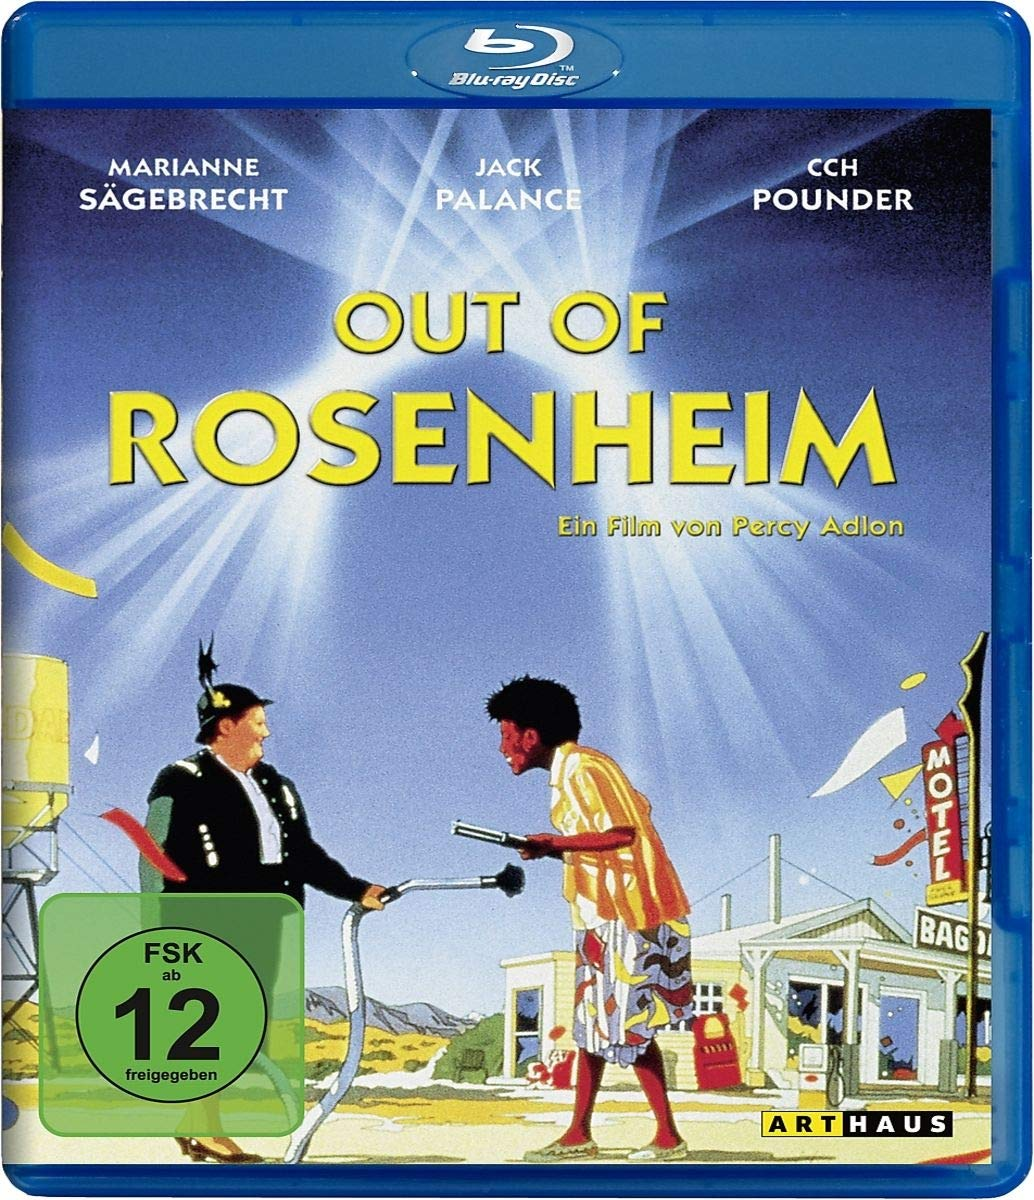 Out.of.Rosenheim.1987.German.REMASTERED.720p.BluRay.x264-DOUCEMENT